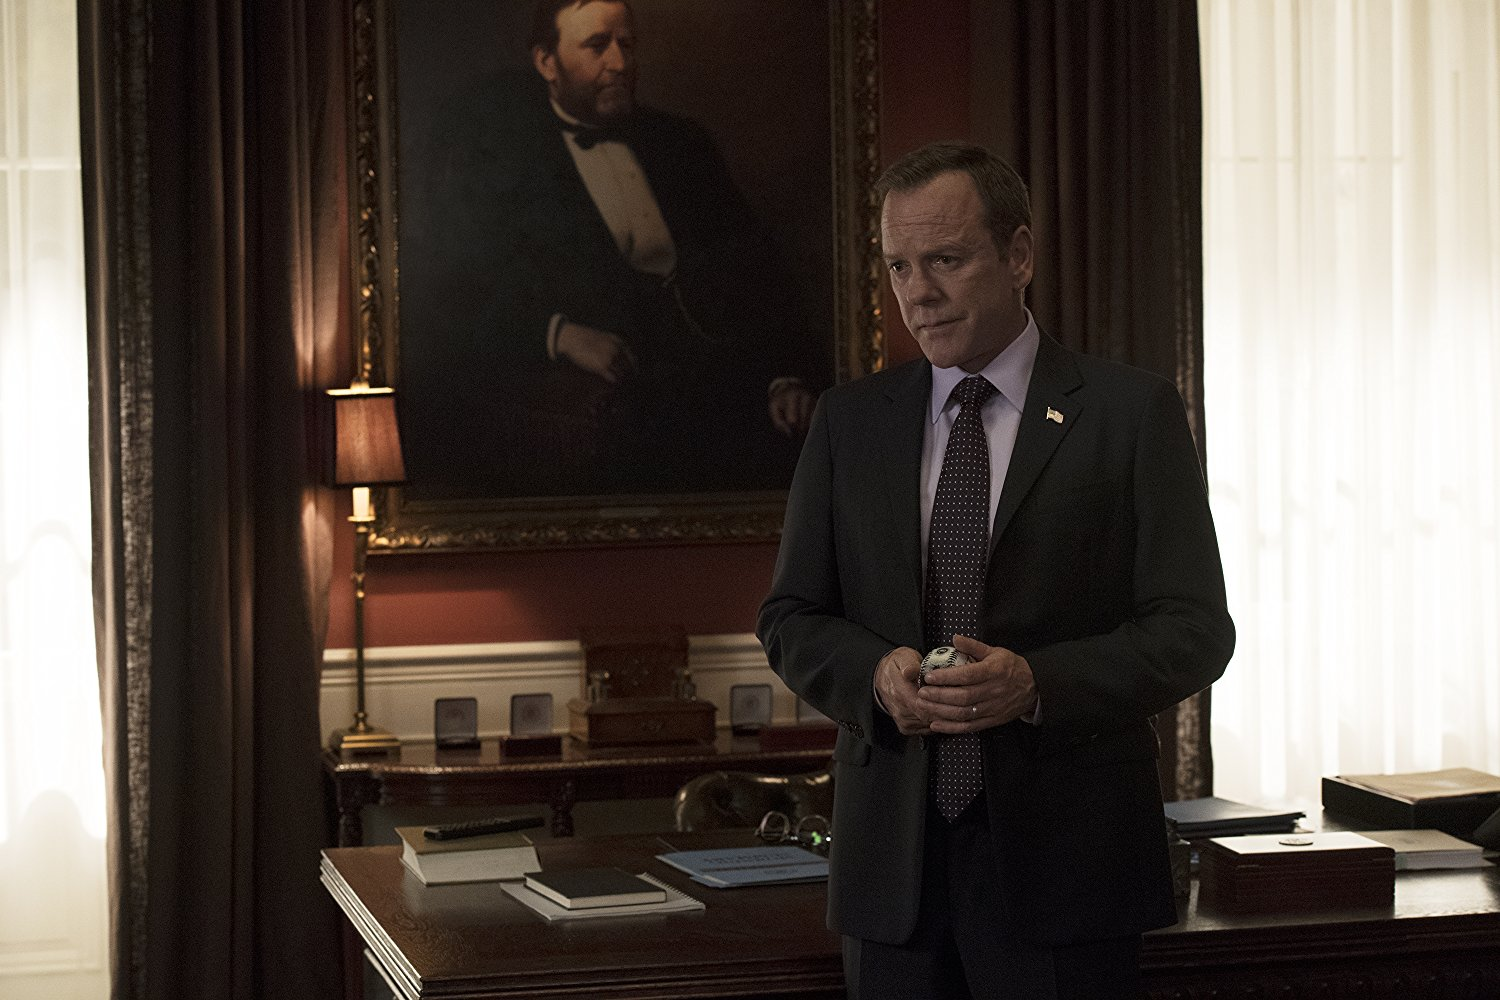 Designated Survivor' Season 2, Episode 4 'Equilibrium' Recap